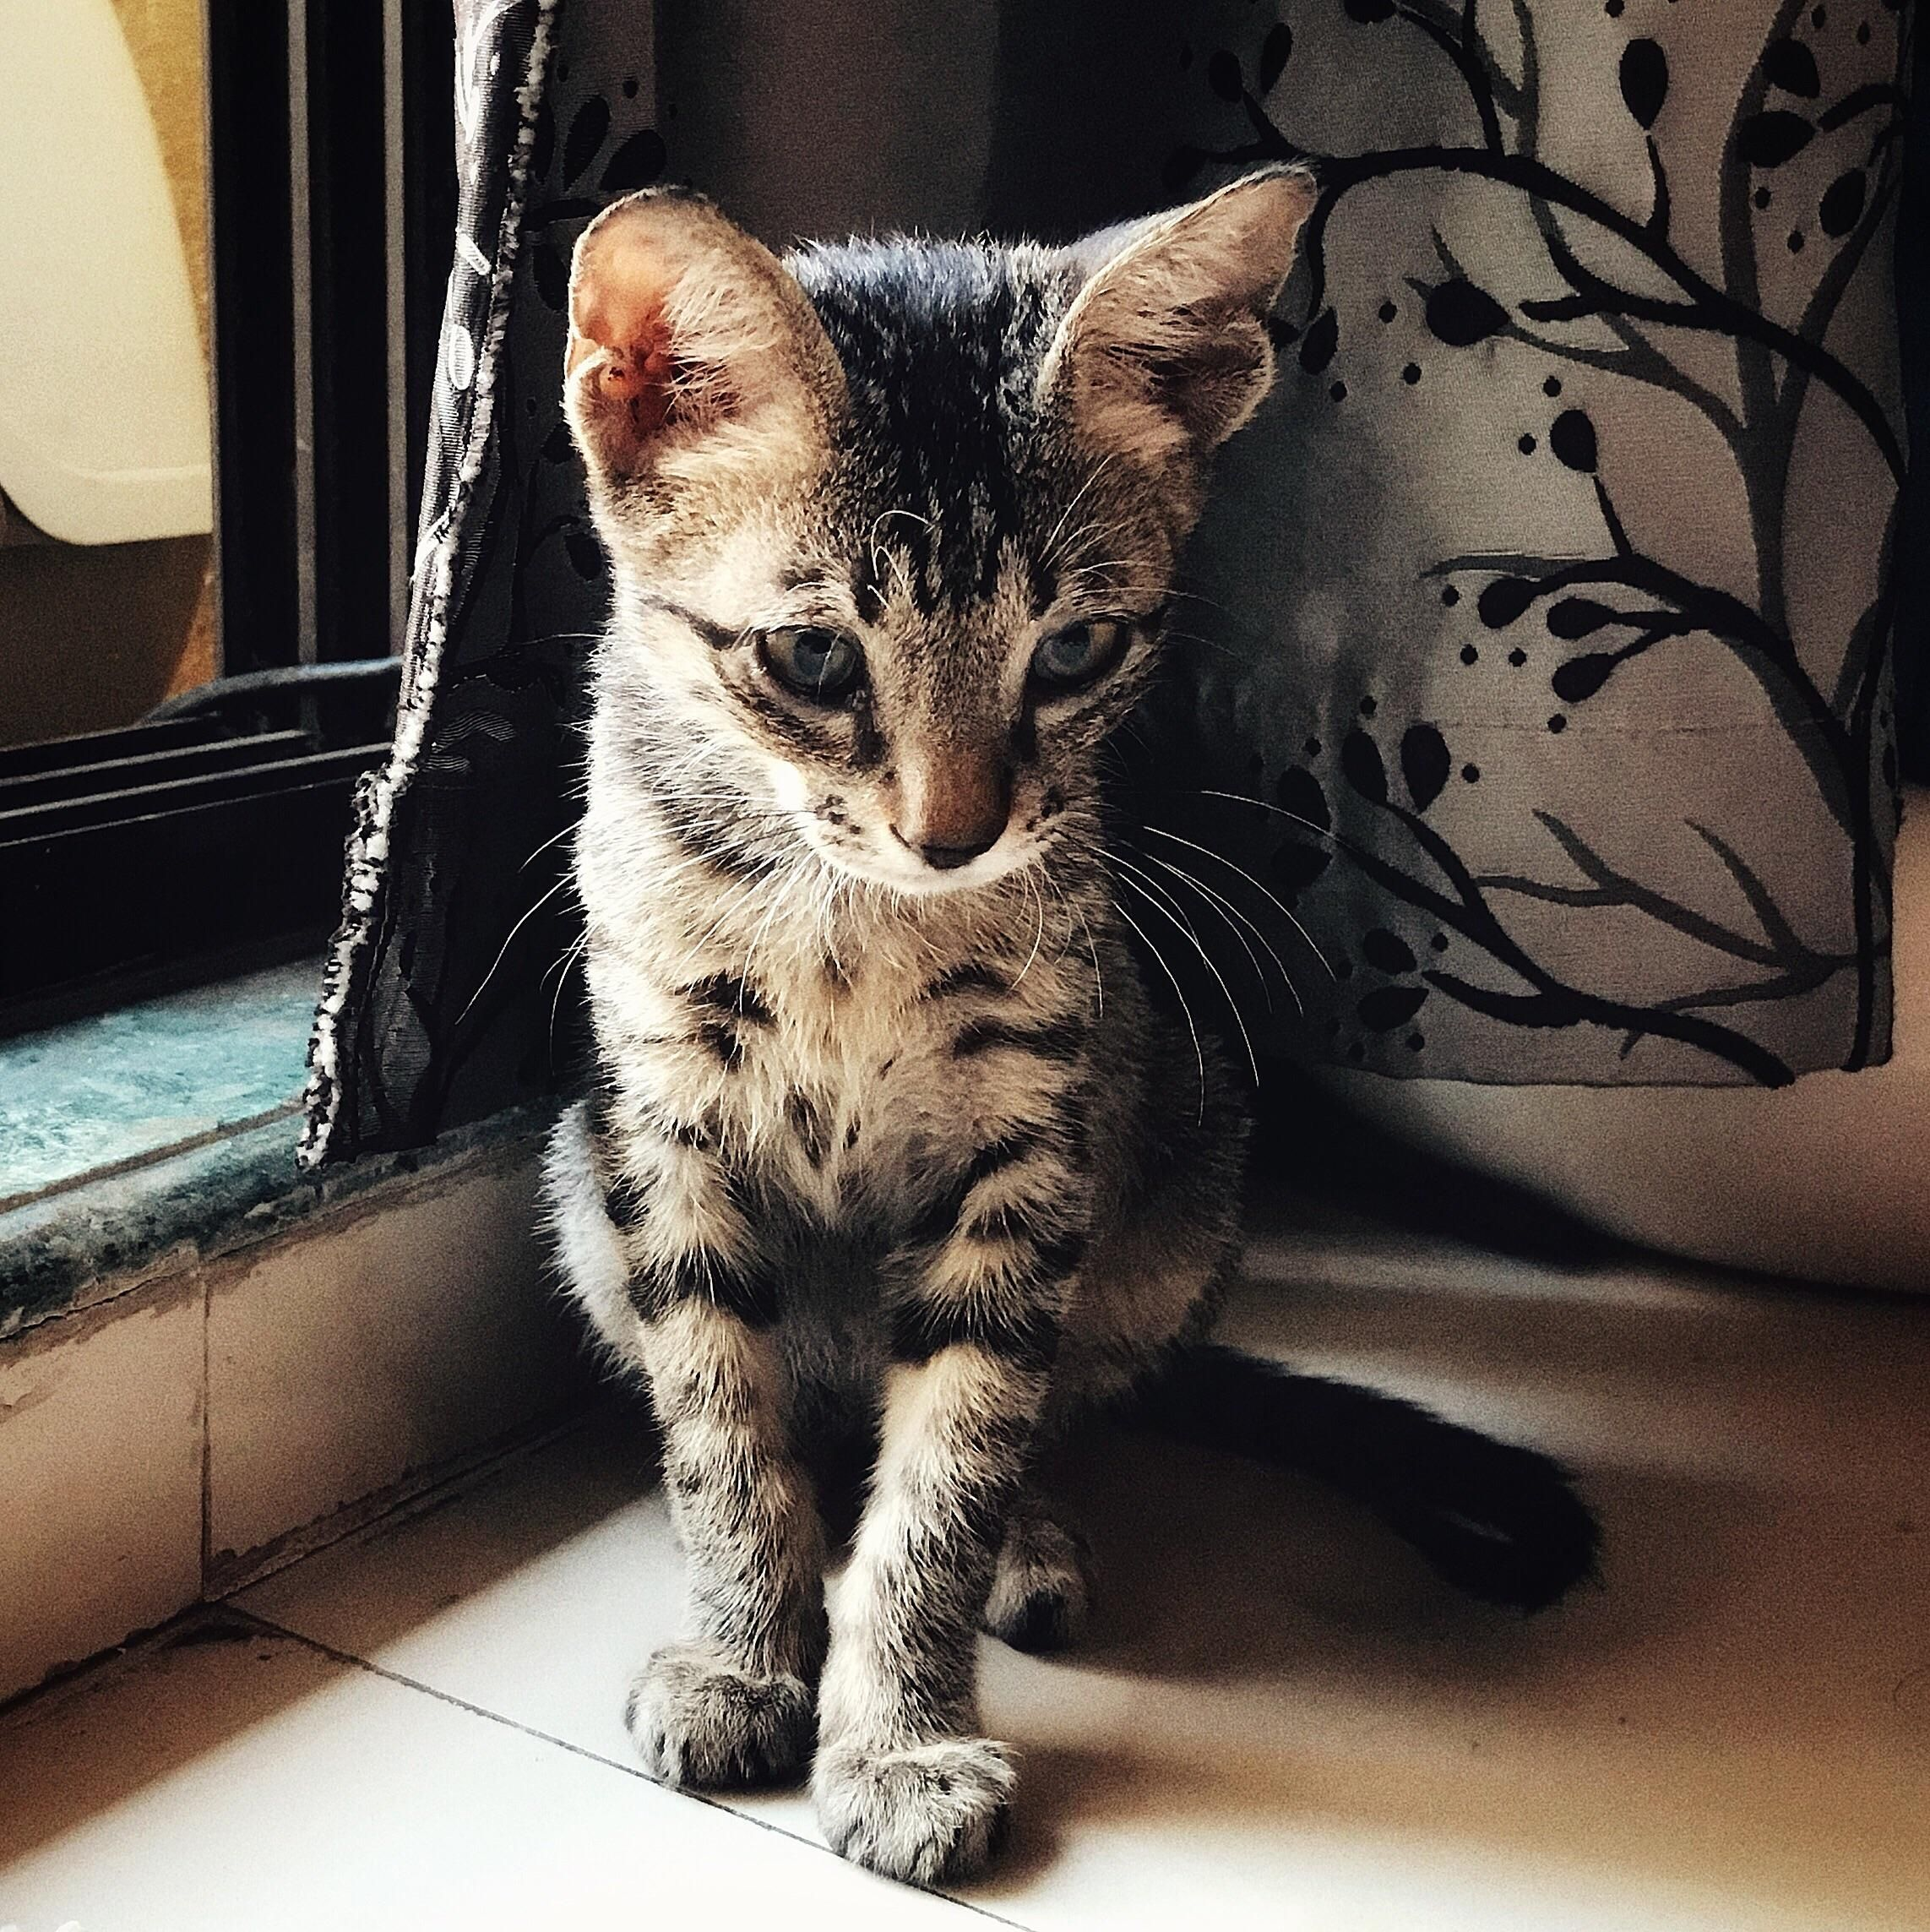 Best Food For 8 Week Old Kitten Recently Adopted This Bundle Of Joy Wall E First Time Having Kitten Please Suggest The Best Food For Kitten He Doesn T Like Kittens Canine Cute